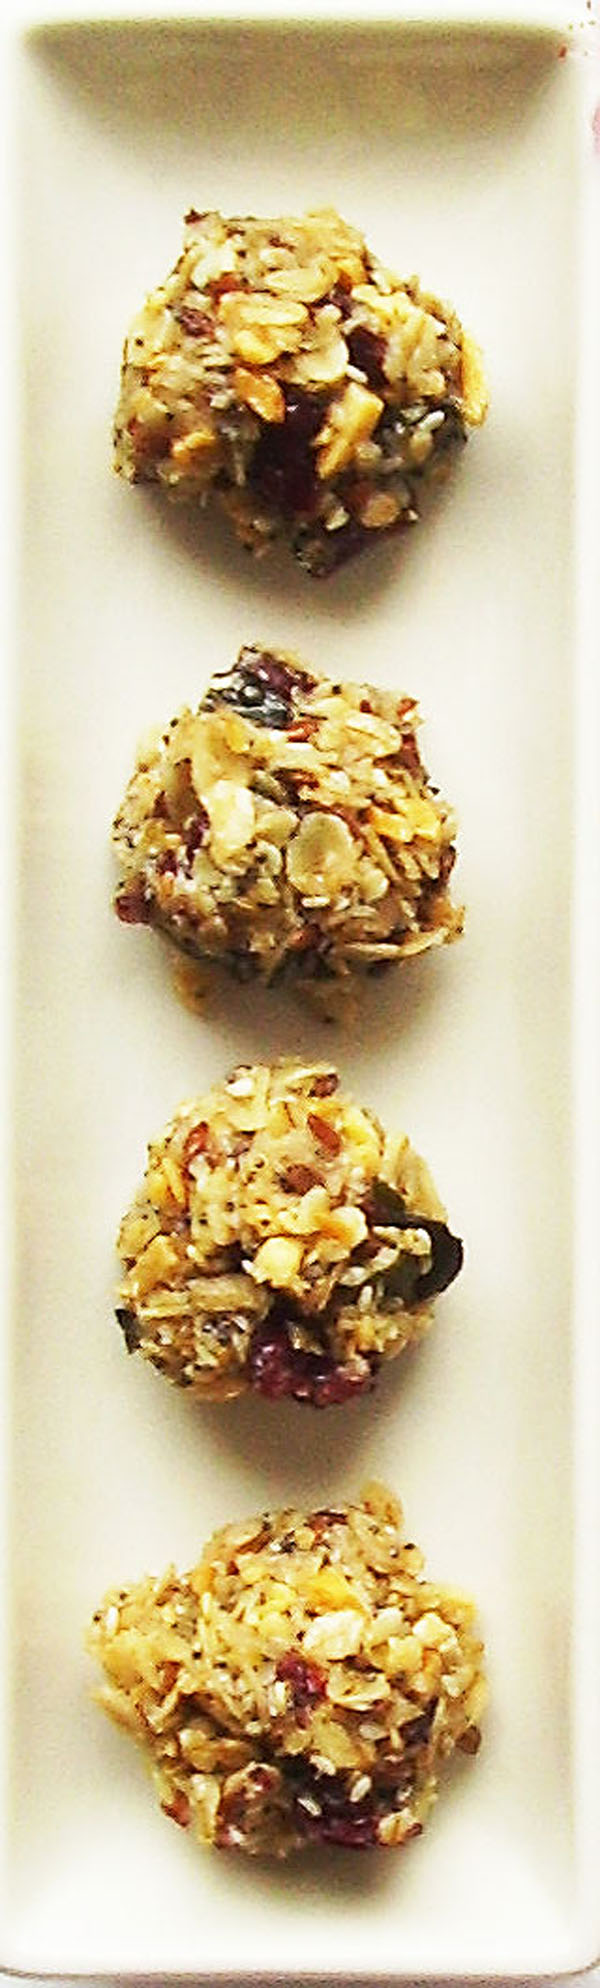 No Bake Energy Balls are healthy, time saving and nutritious breakfast or a snack. Energy boosting !